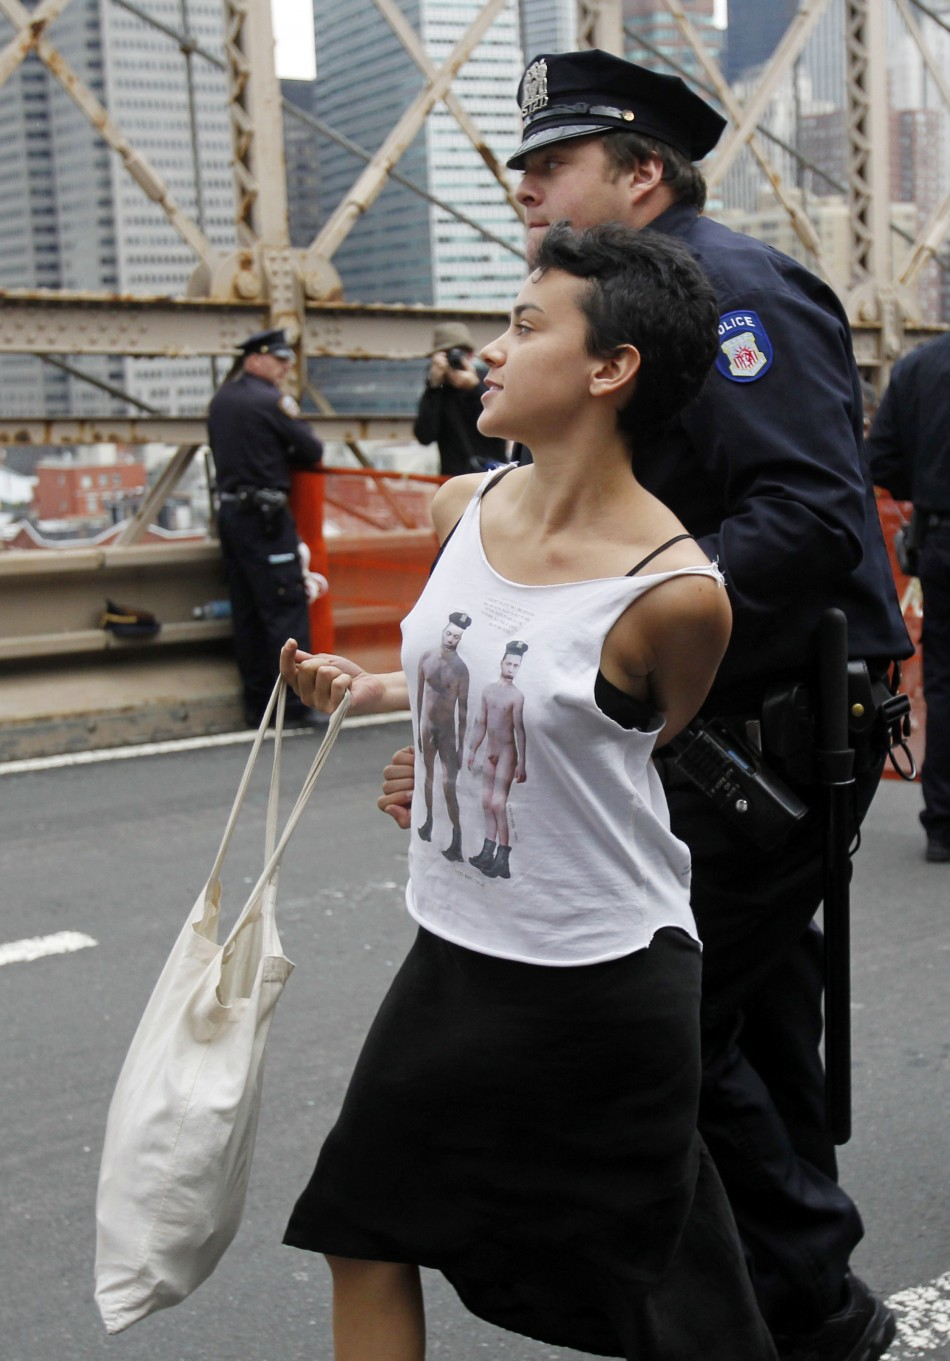 Anonymous Release Videos Showing Occupy Wall Street Brooklyn Bridge Arrests